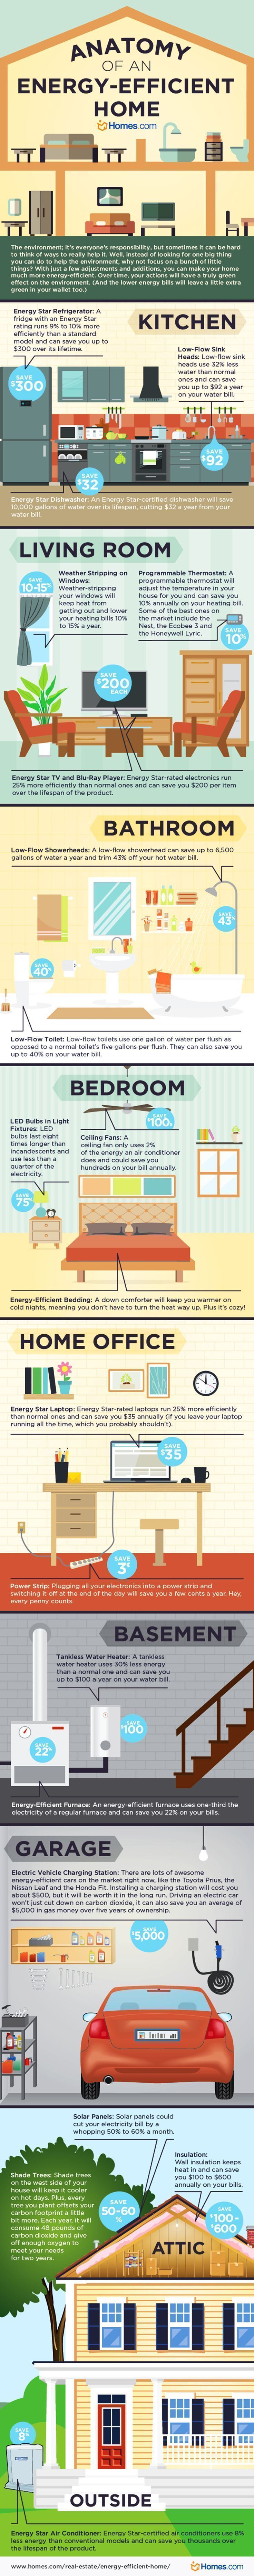 Energy Efficient Home Upgrades In Los Angeles For 0 Down